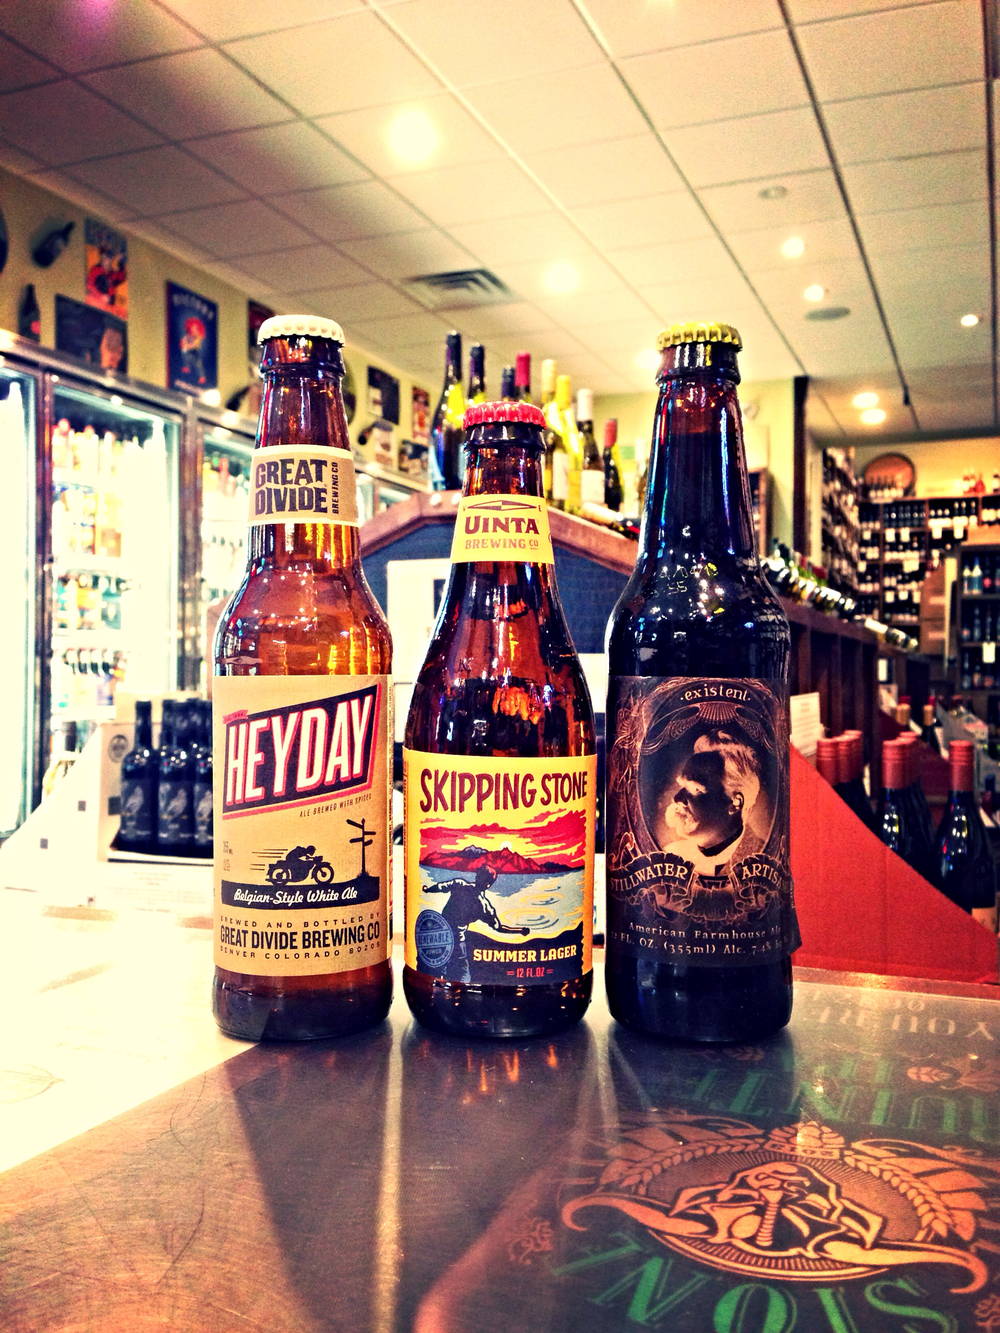 Great Divide Heyday, Uinta Skipping Stone, and Stillwater Existent